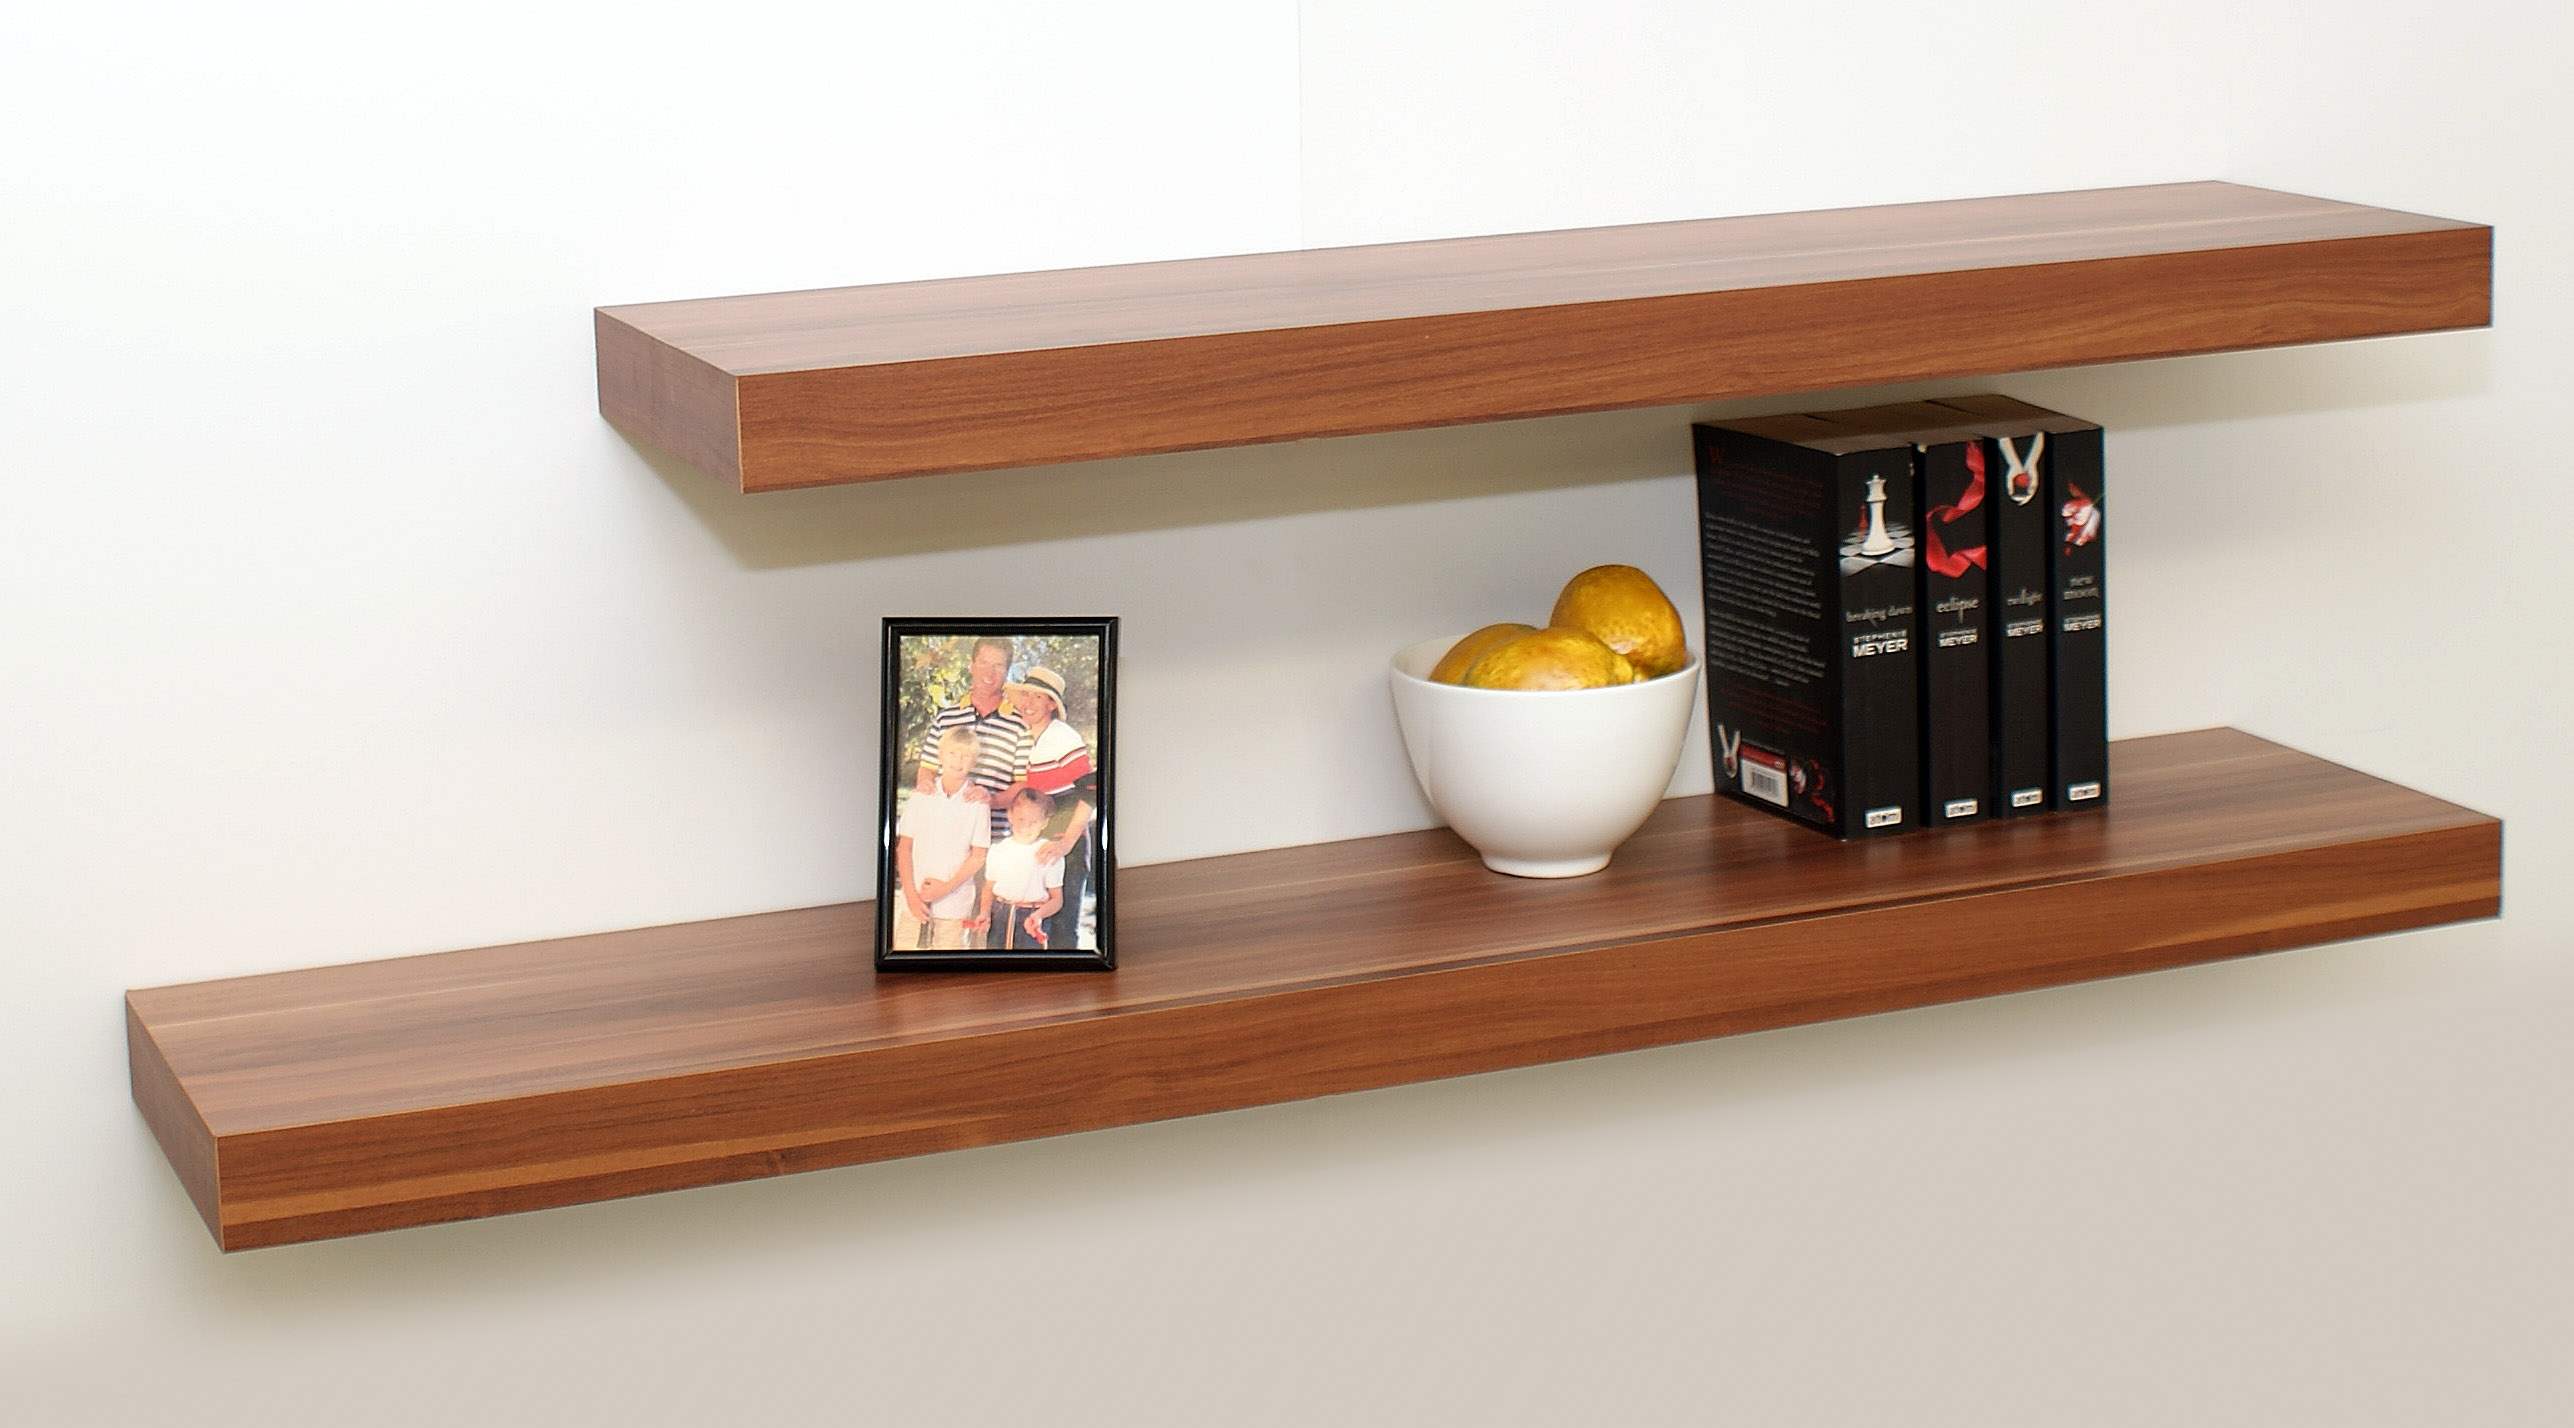 Floating Shelves Shelf Free Bookshelves Diy Wall For Kitchen With Regard To Floating Shelves (Image 10 of 15)